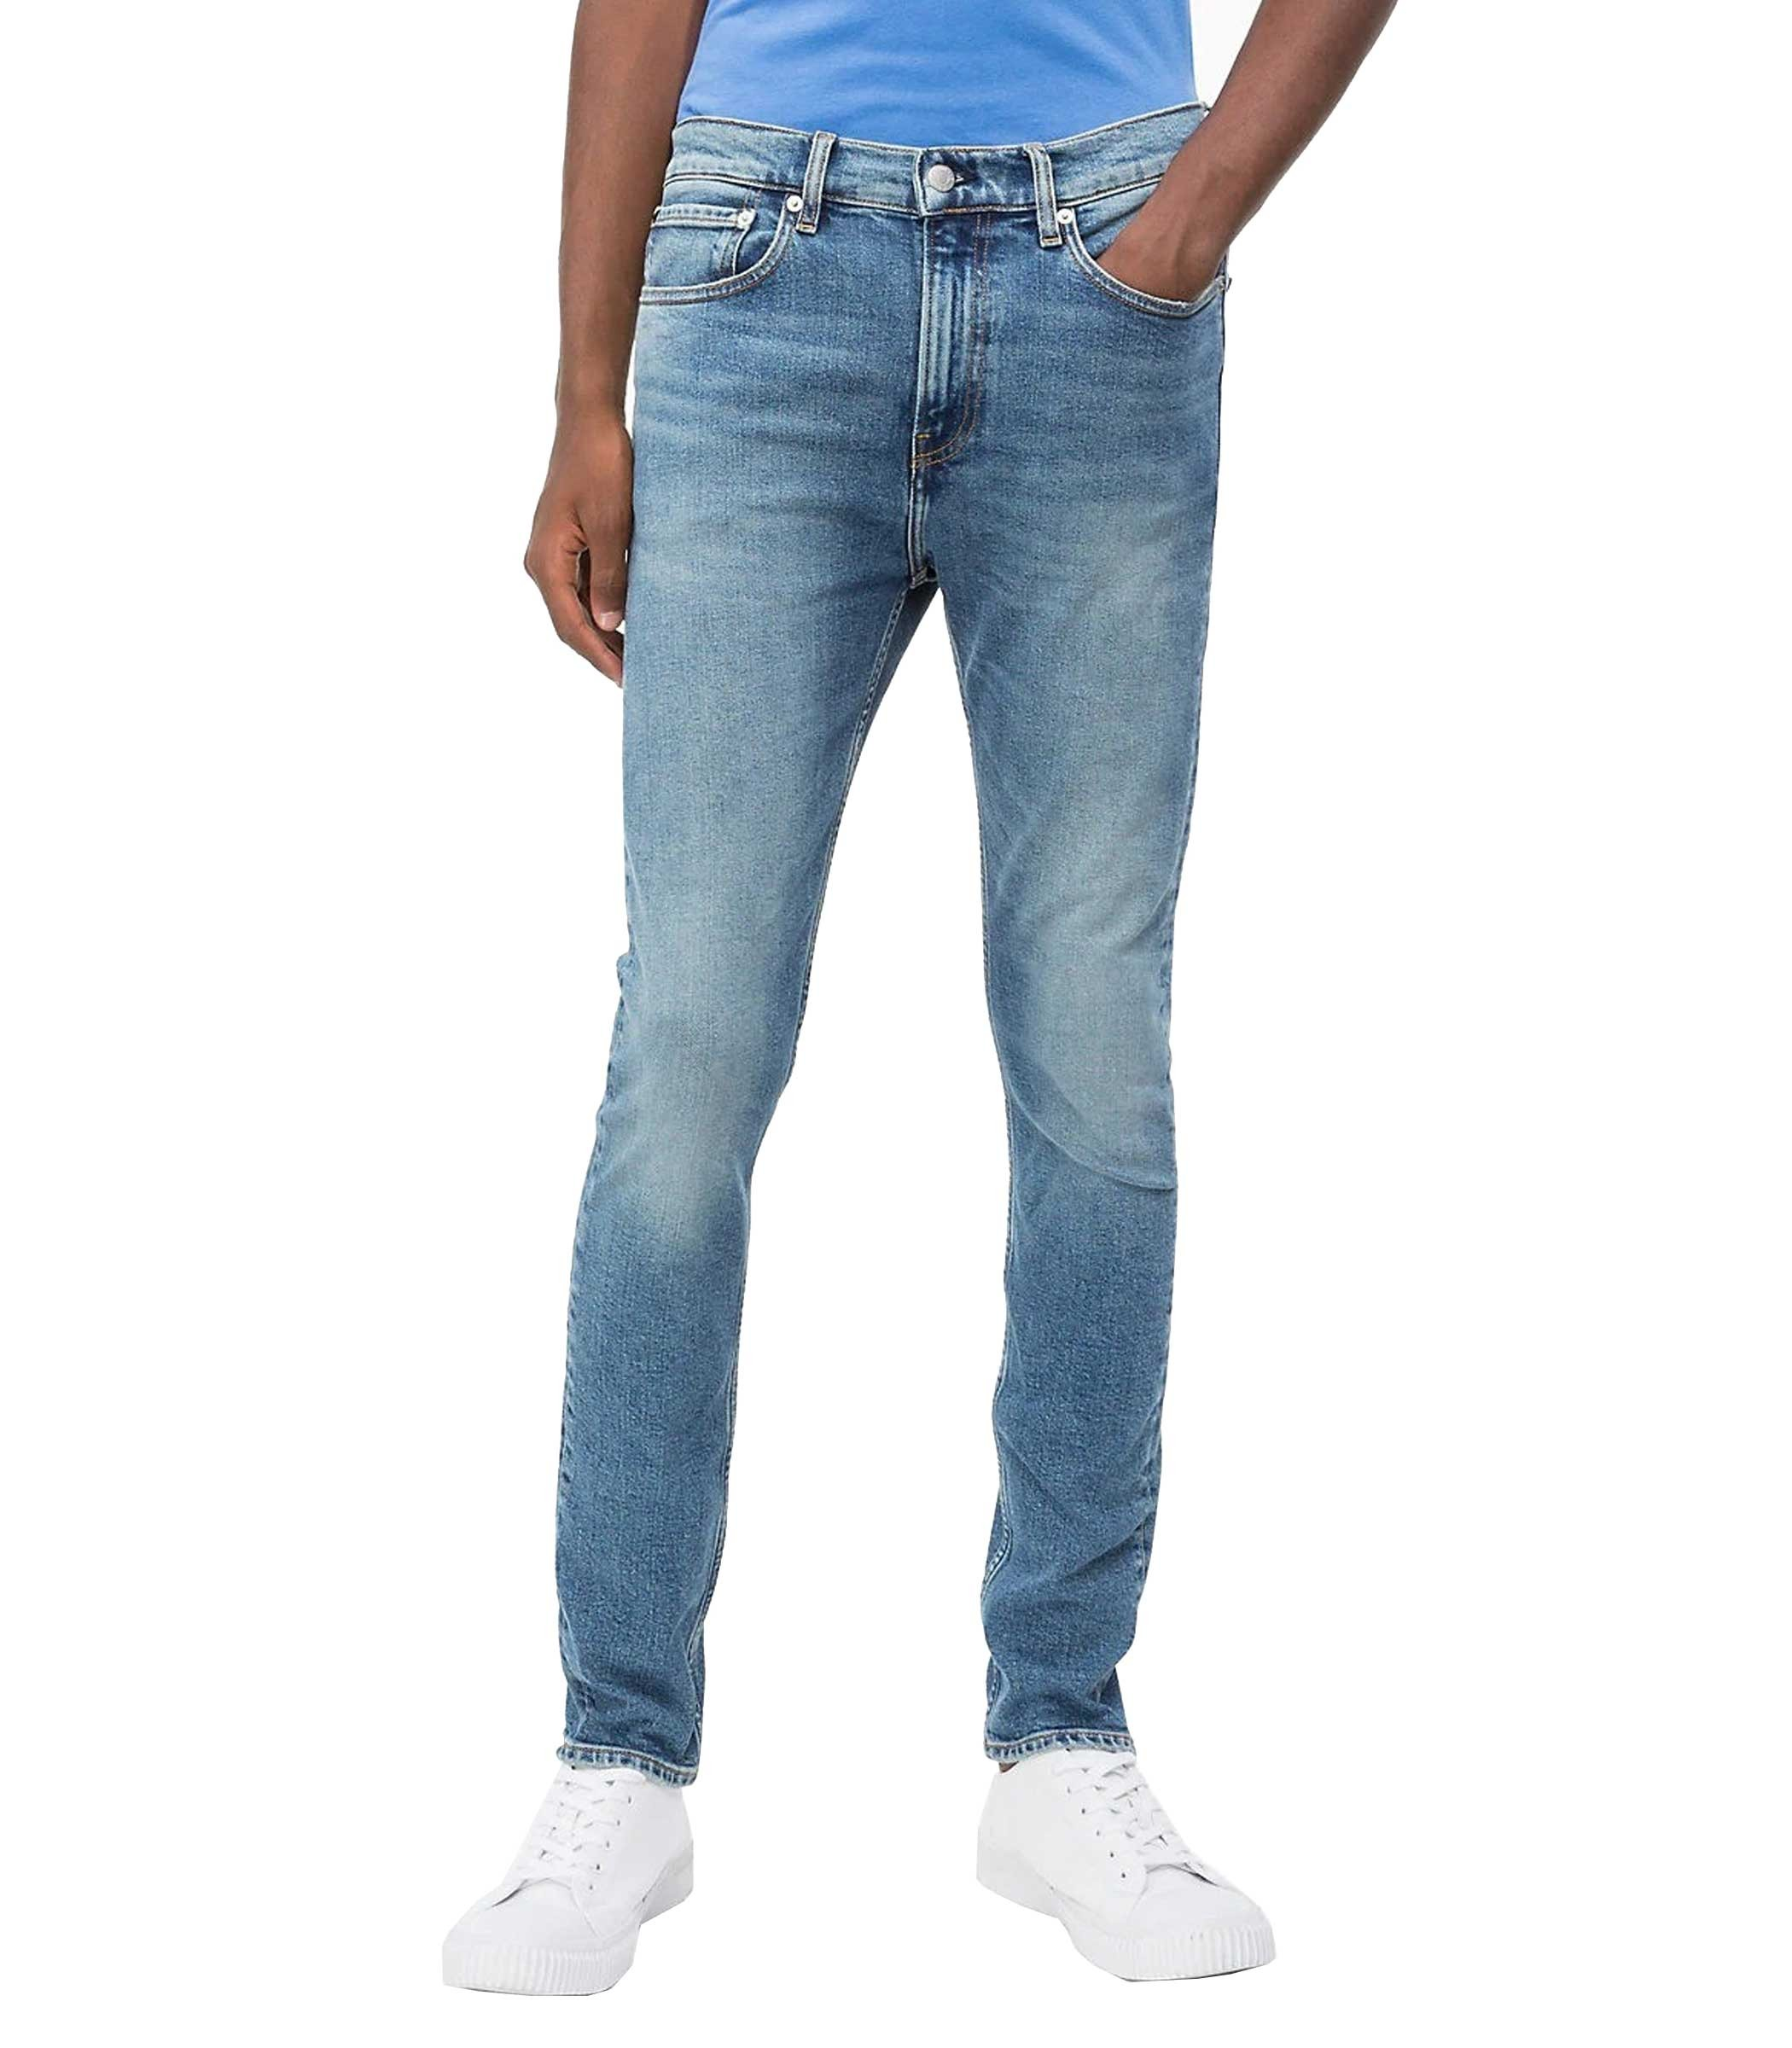 Uomo Outfit Outfit Uomo Skinny Jeans Outfit Skinny Jeans 8n0wkOP